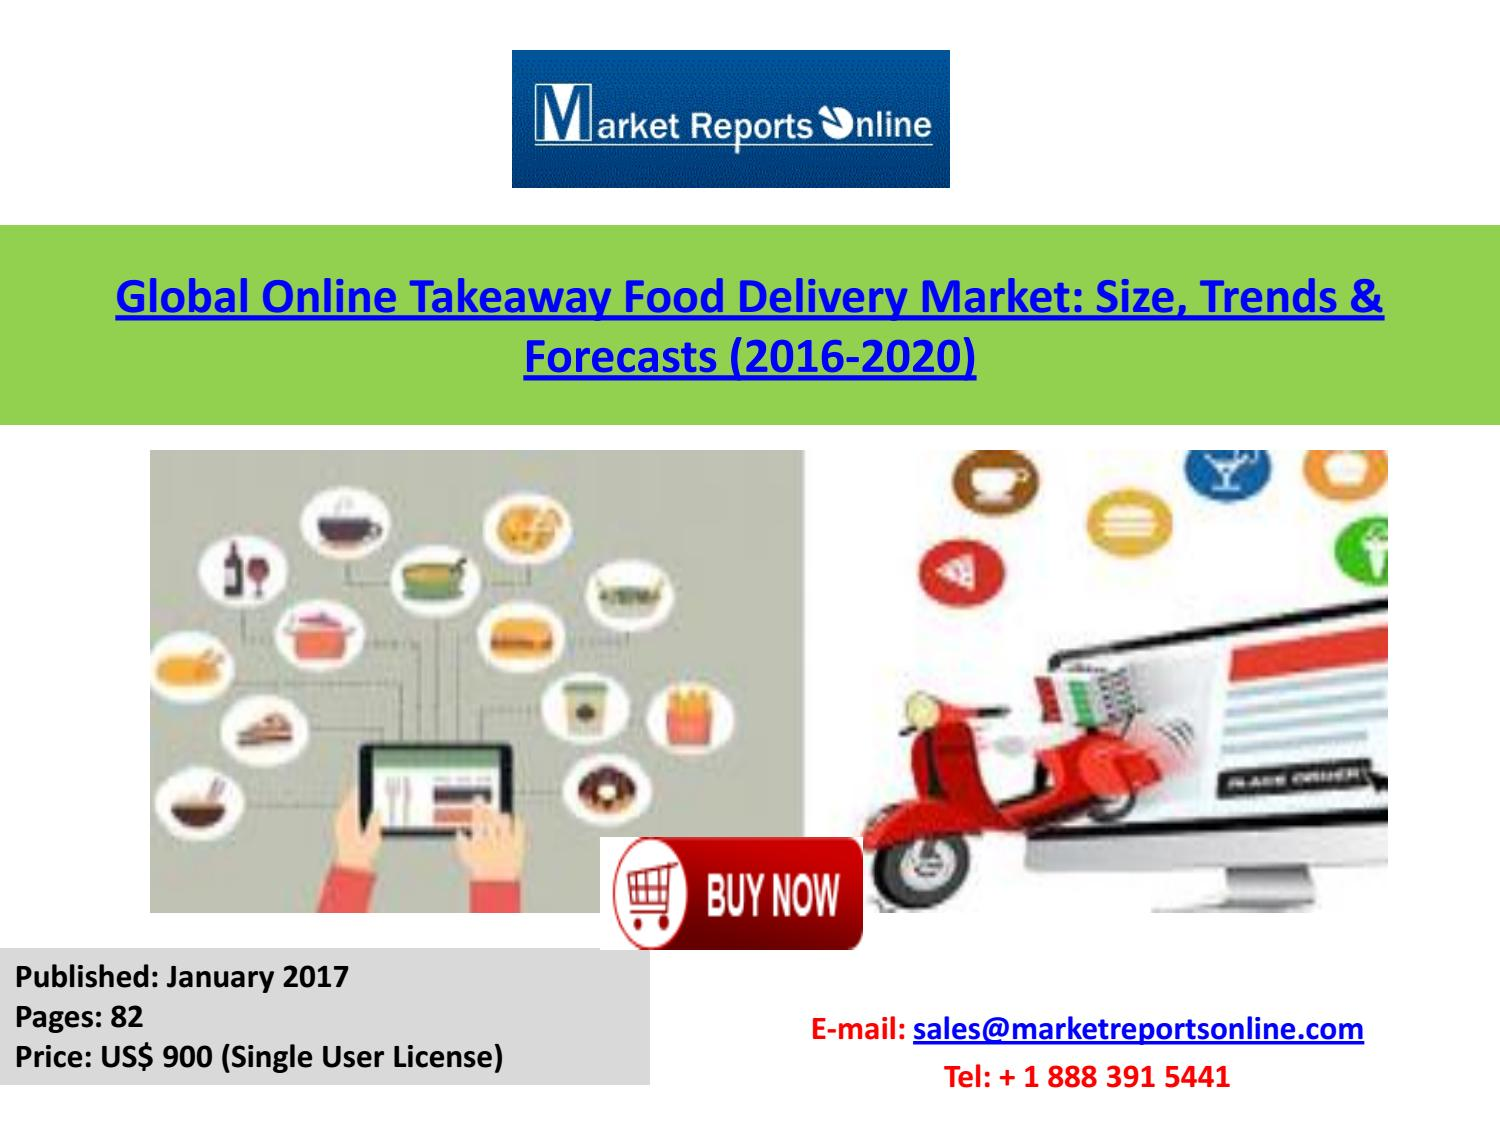 Online Takeaway Food Delivery Industry Analysis & 2020 Forecast by